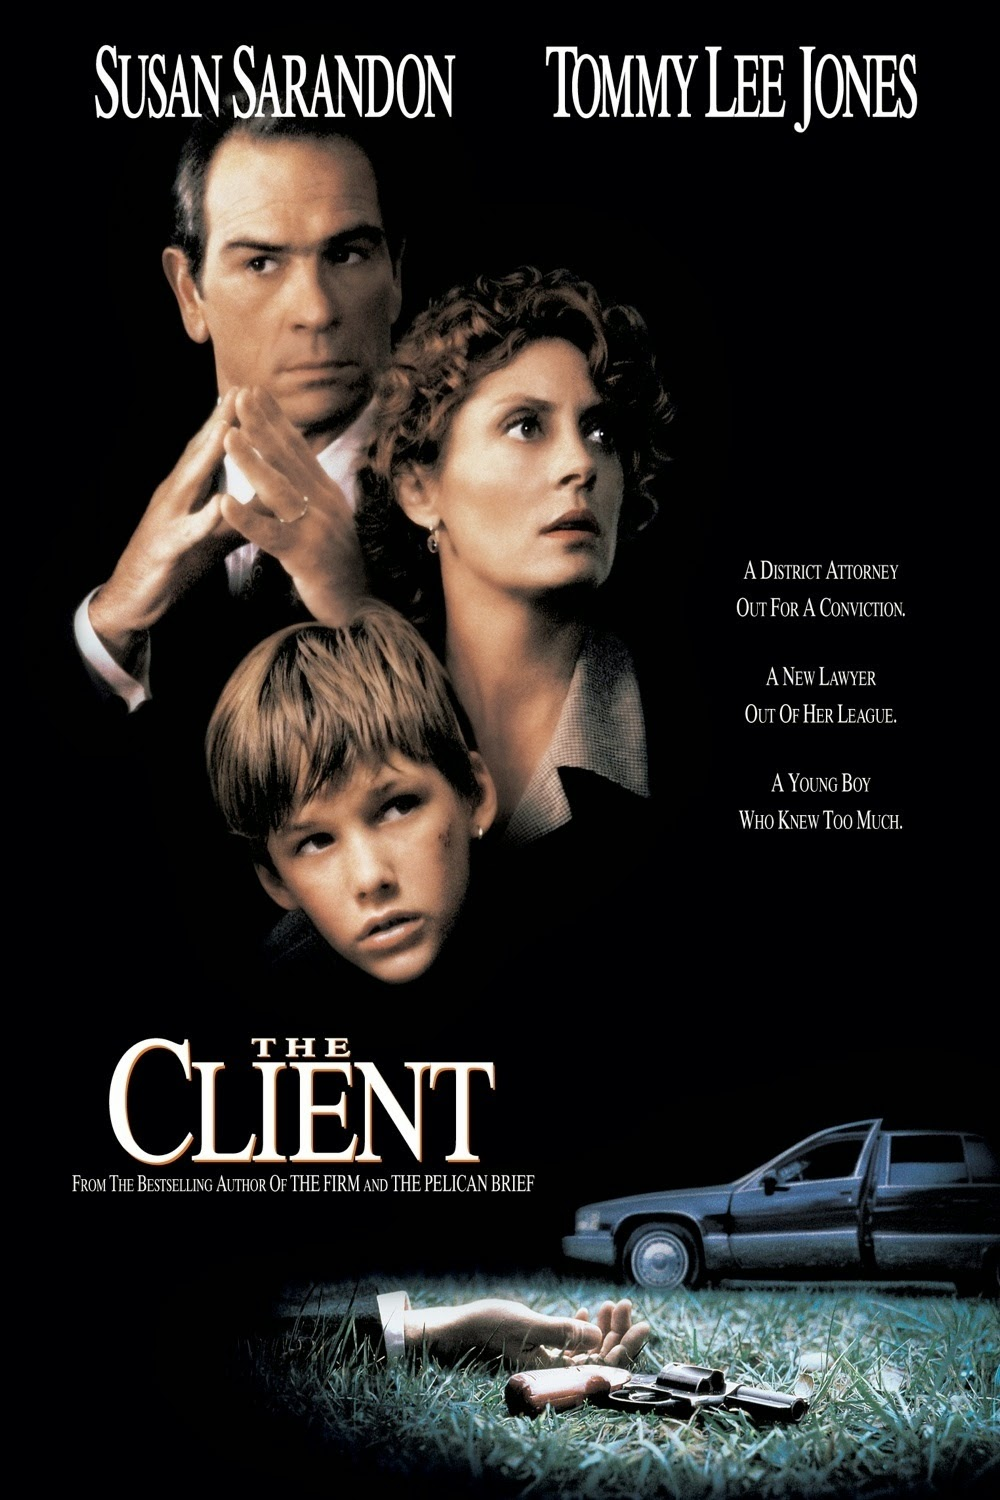 The Client — 3.5 out of 5 stars